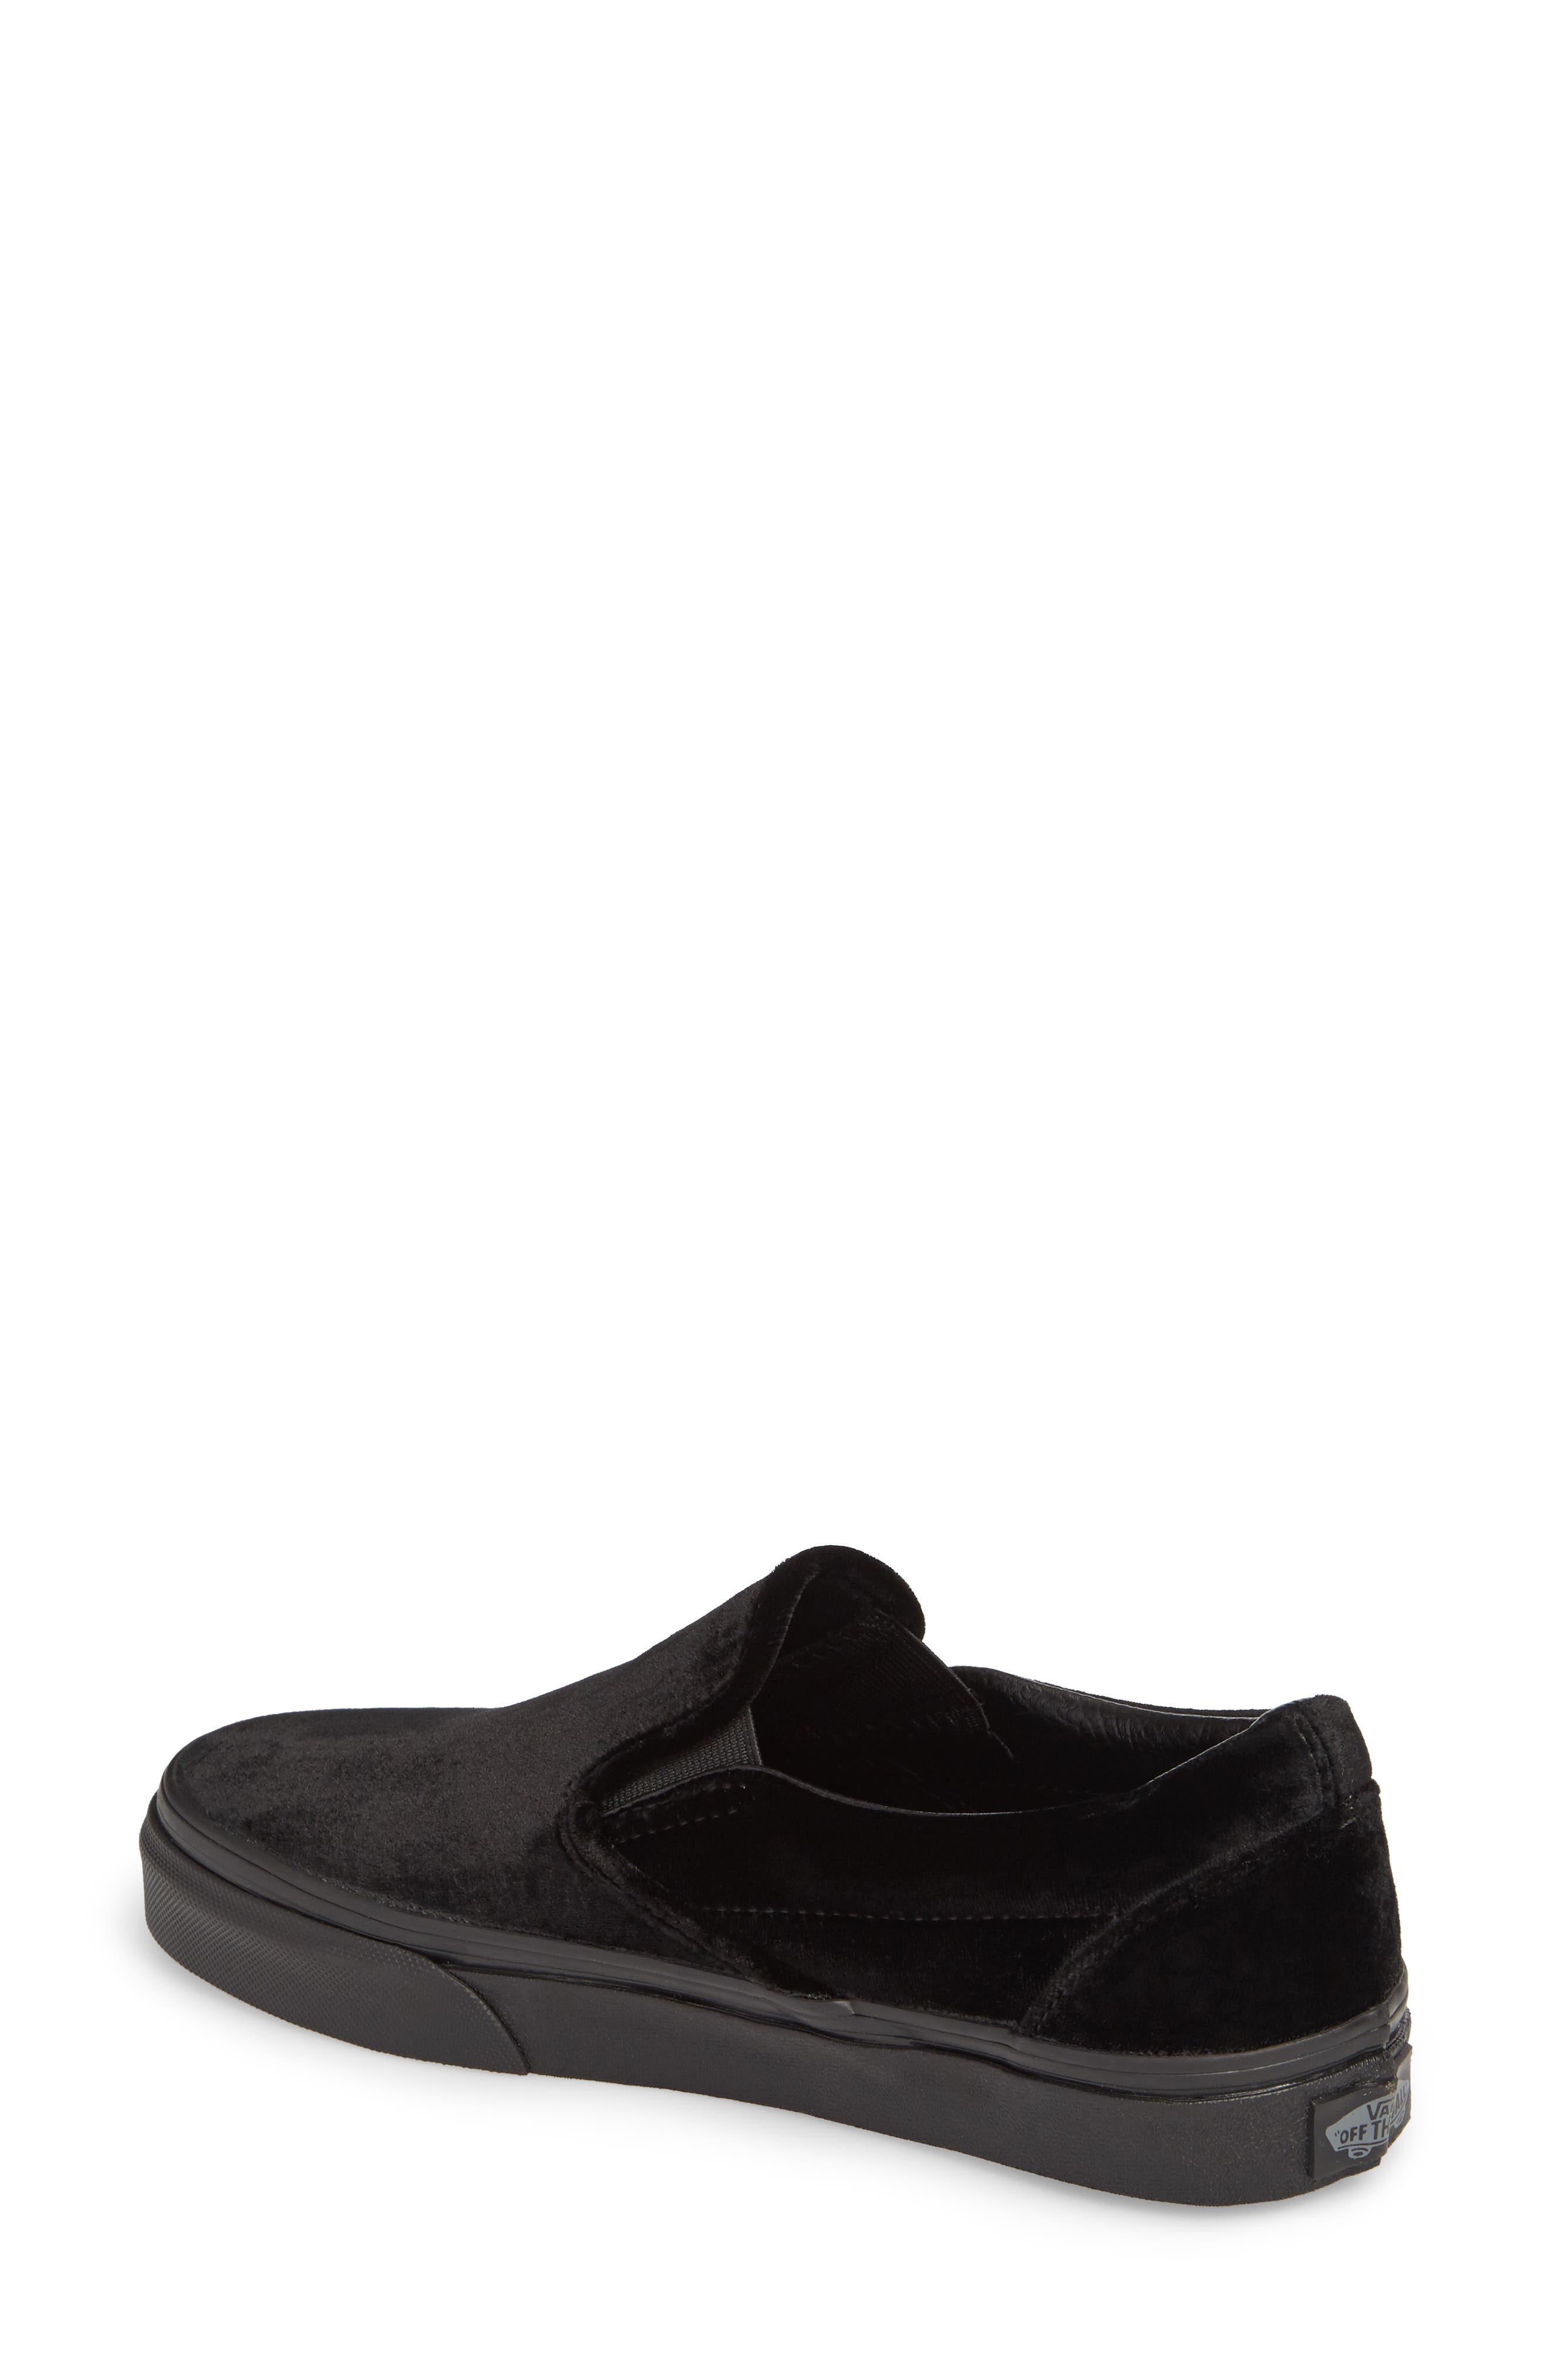 Classic Slip-On Sneaker,                             Alternate thumbnail 90, color,